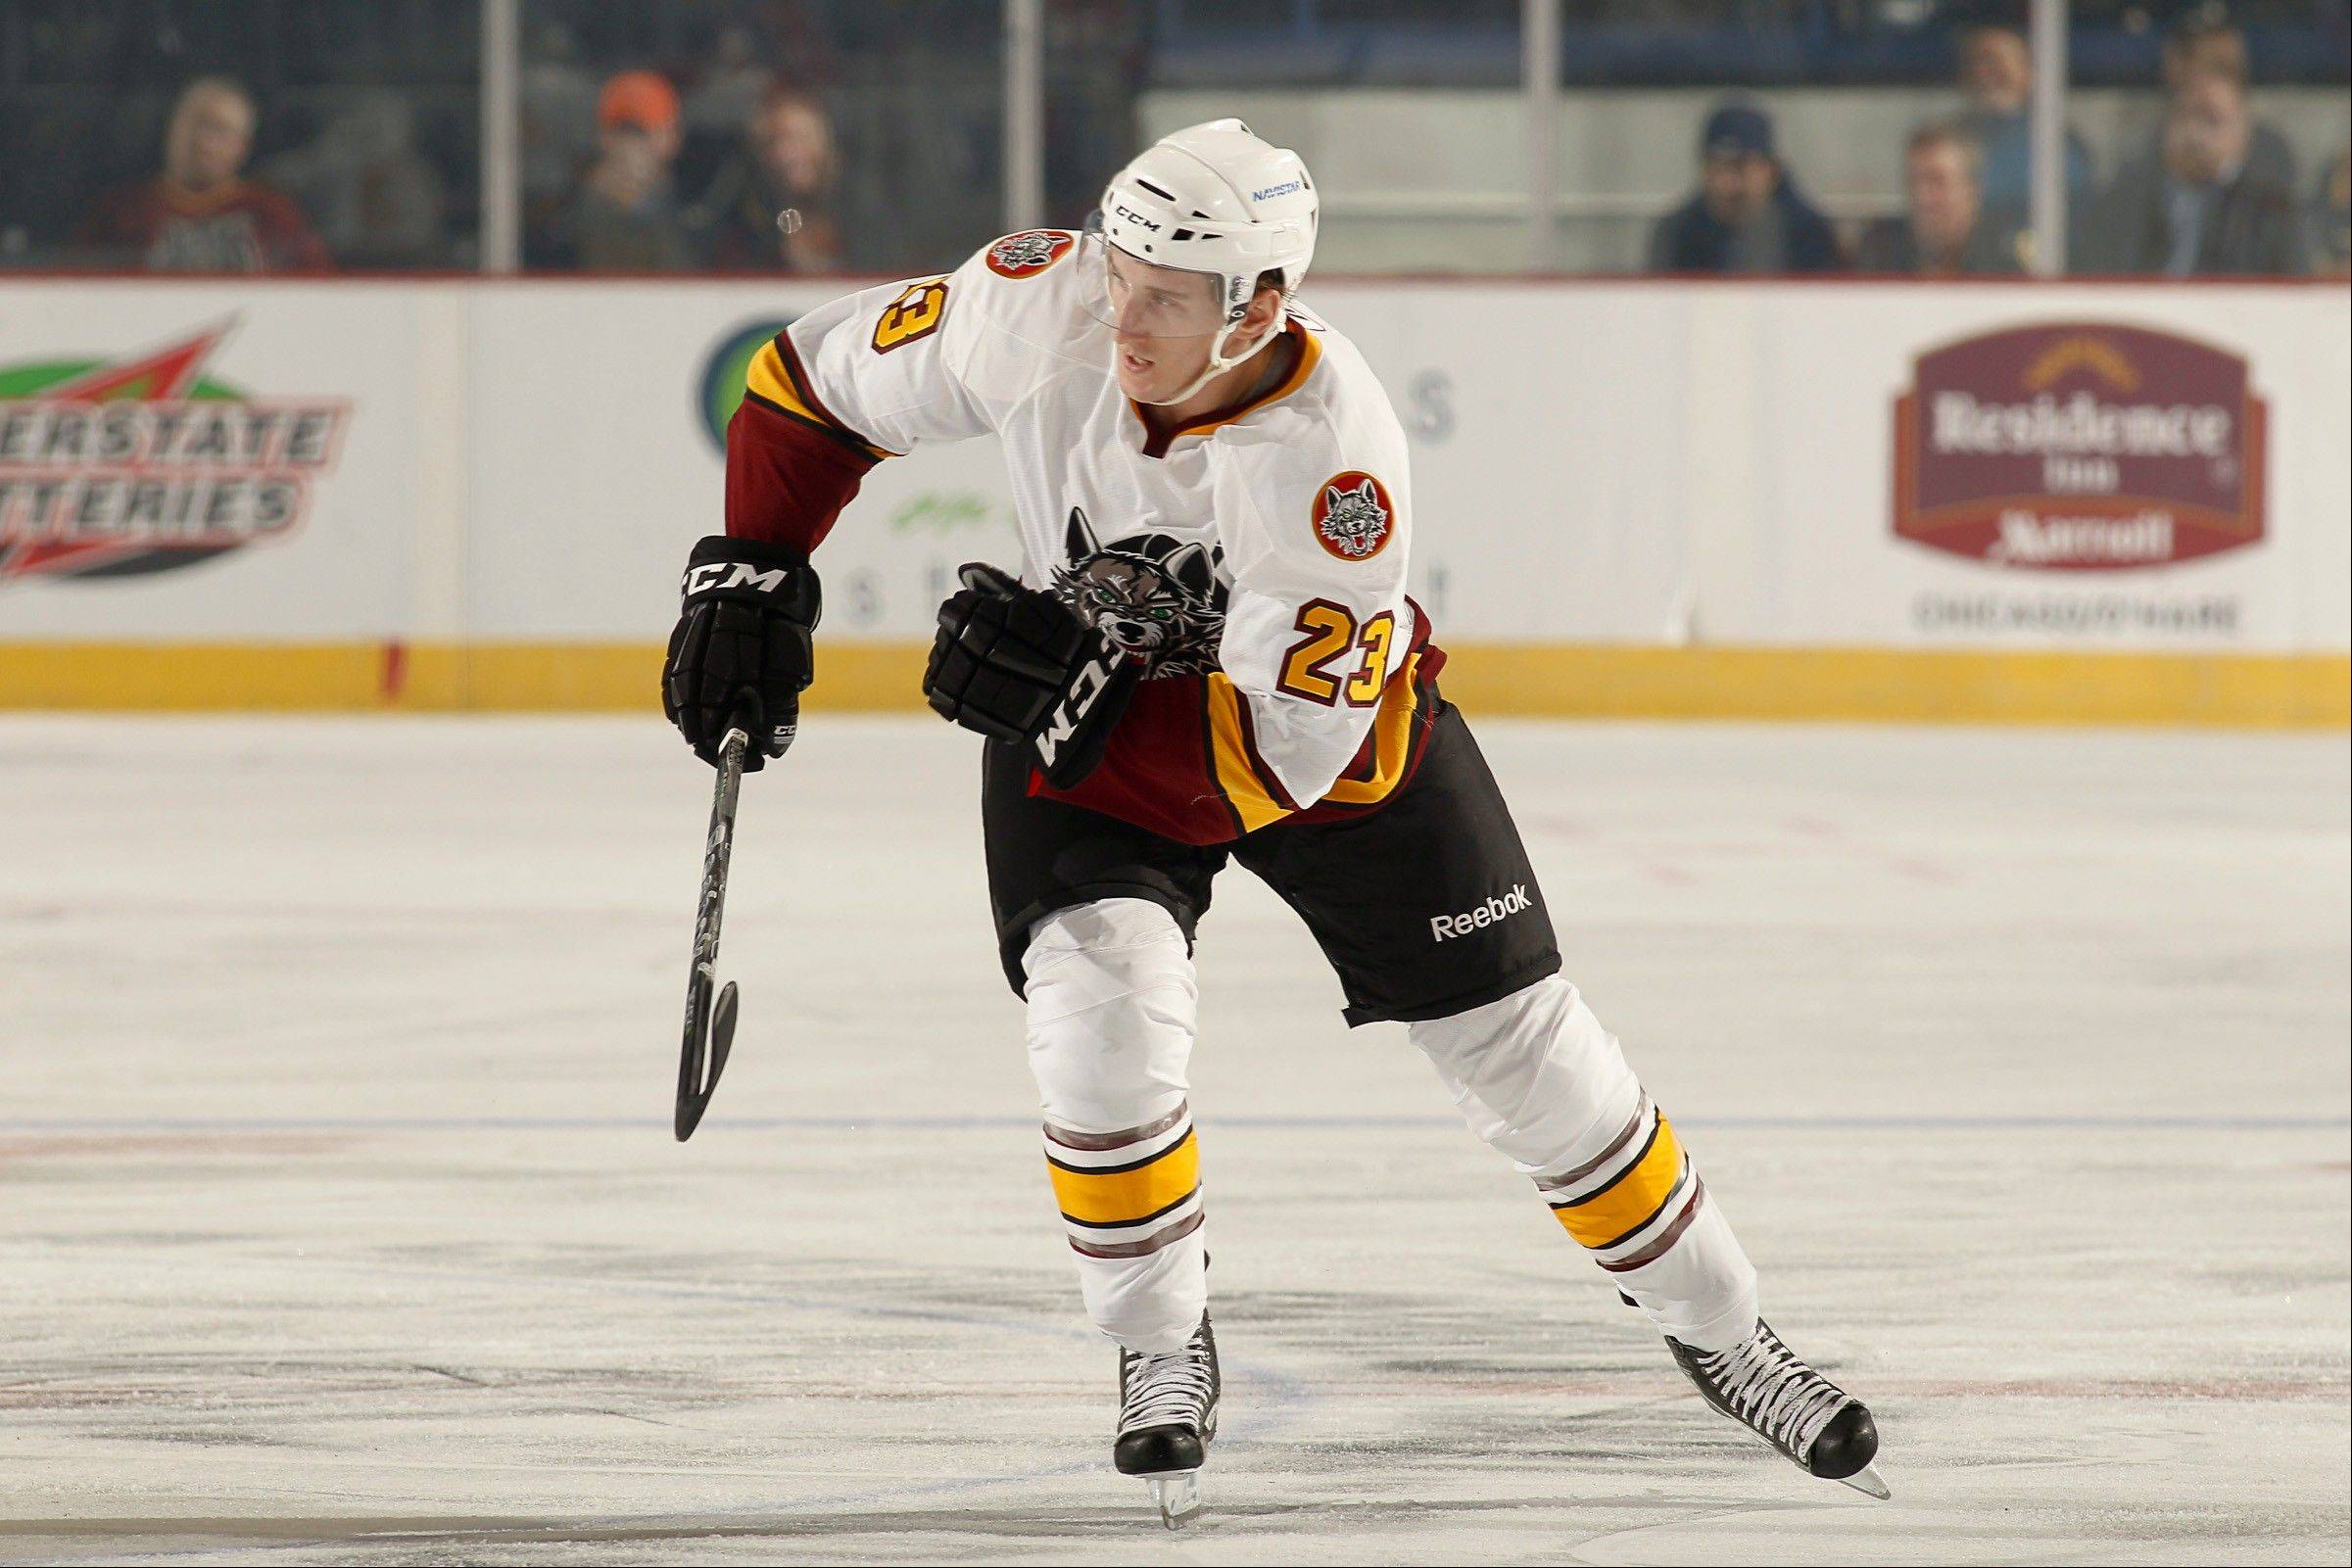 Bill Sweatt of Elburn has spent the last two seasons with the Chicago Wolves hockey club.